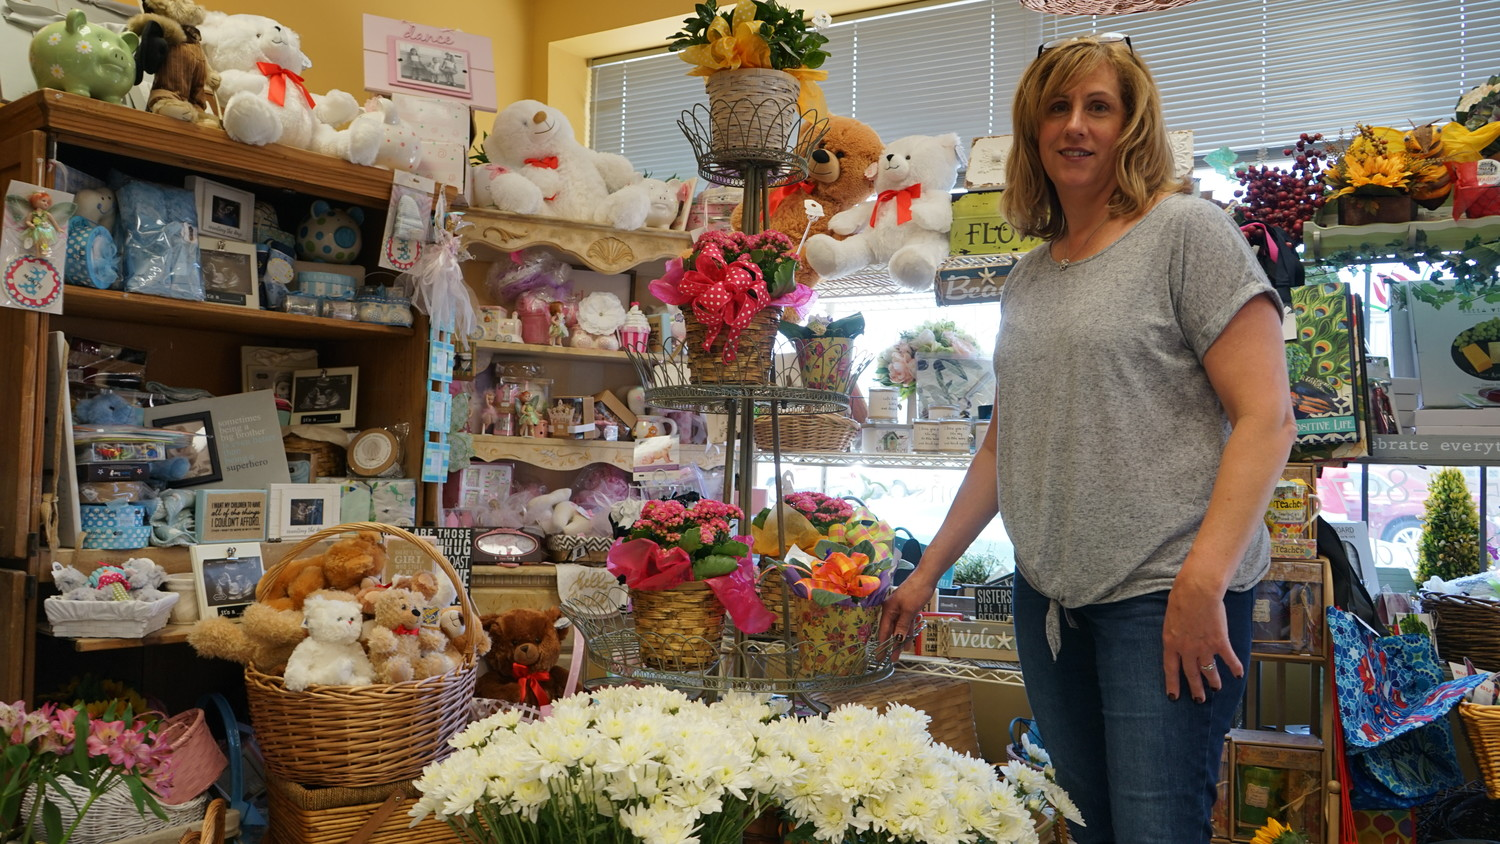 Doris the Florist has a wide variety of gifts to go with any flower arrangement a customer might want.